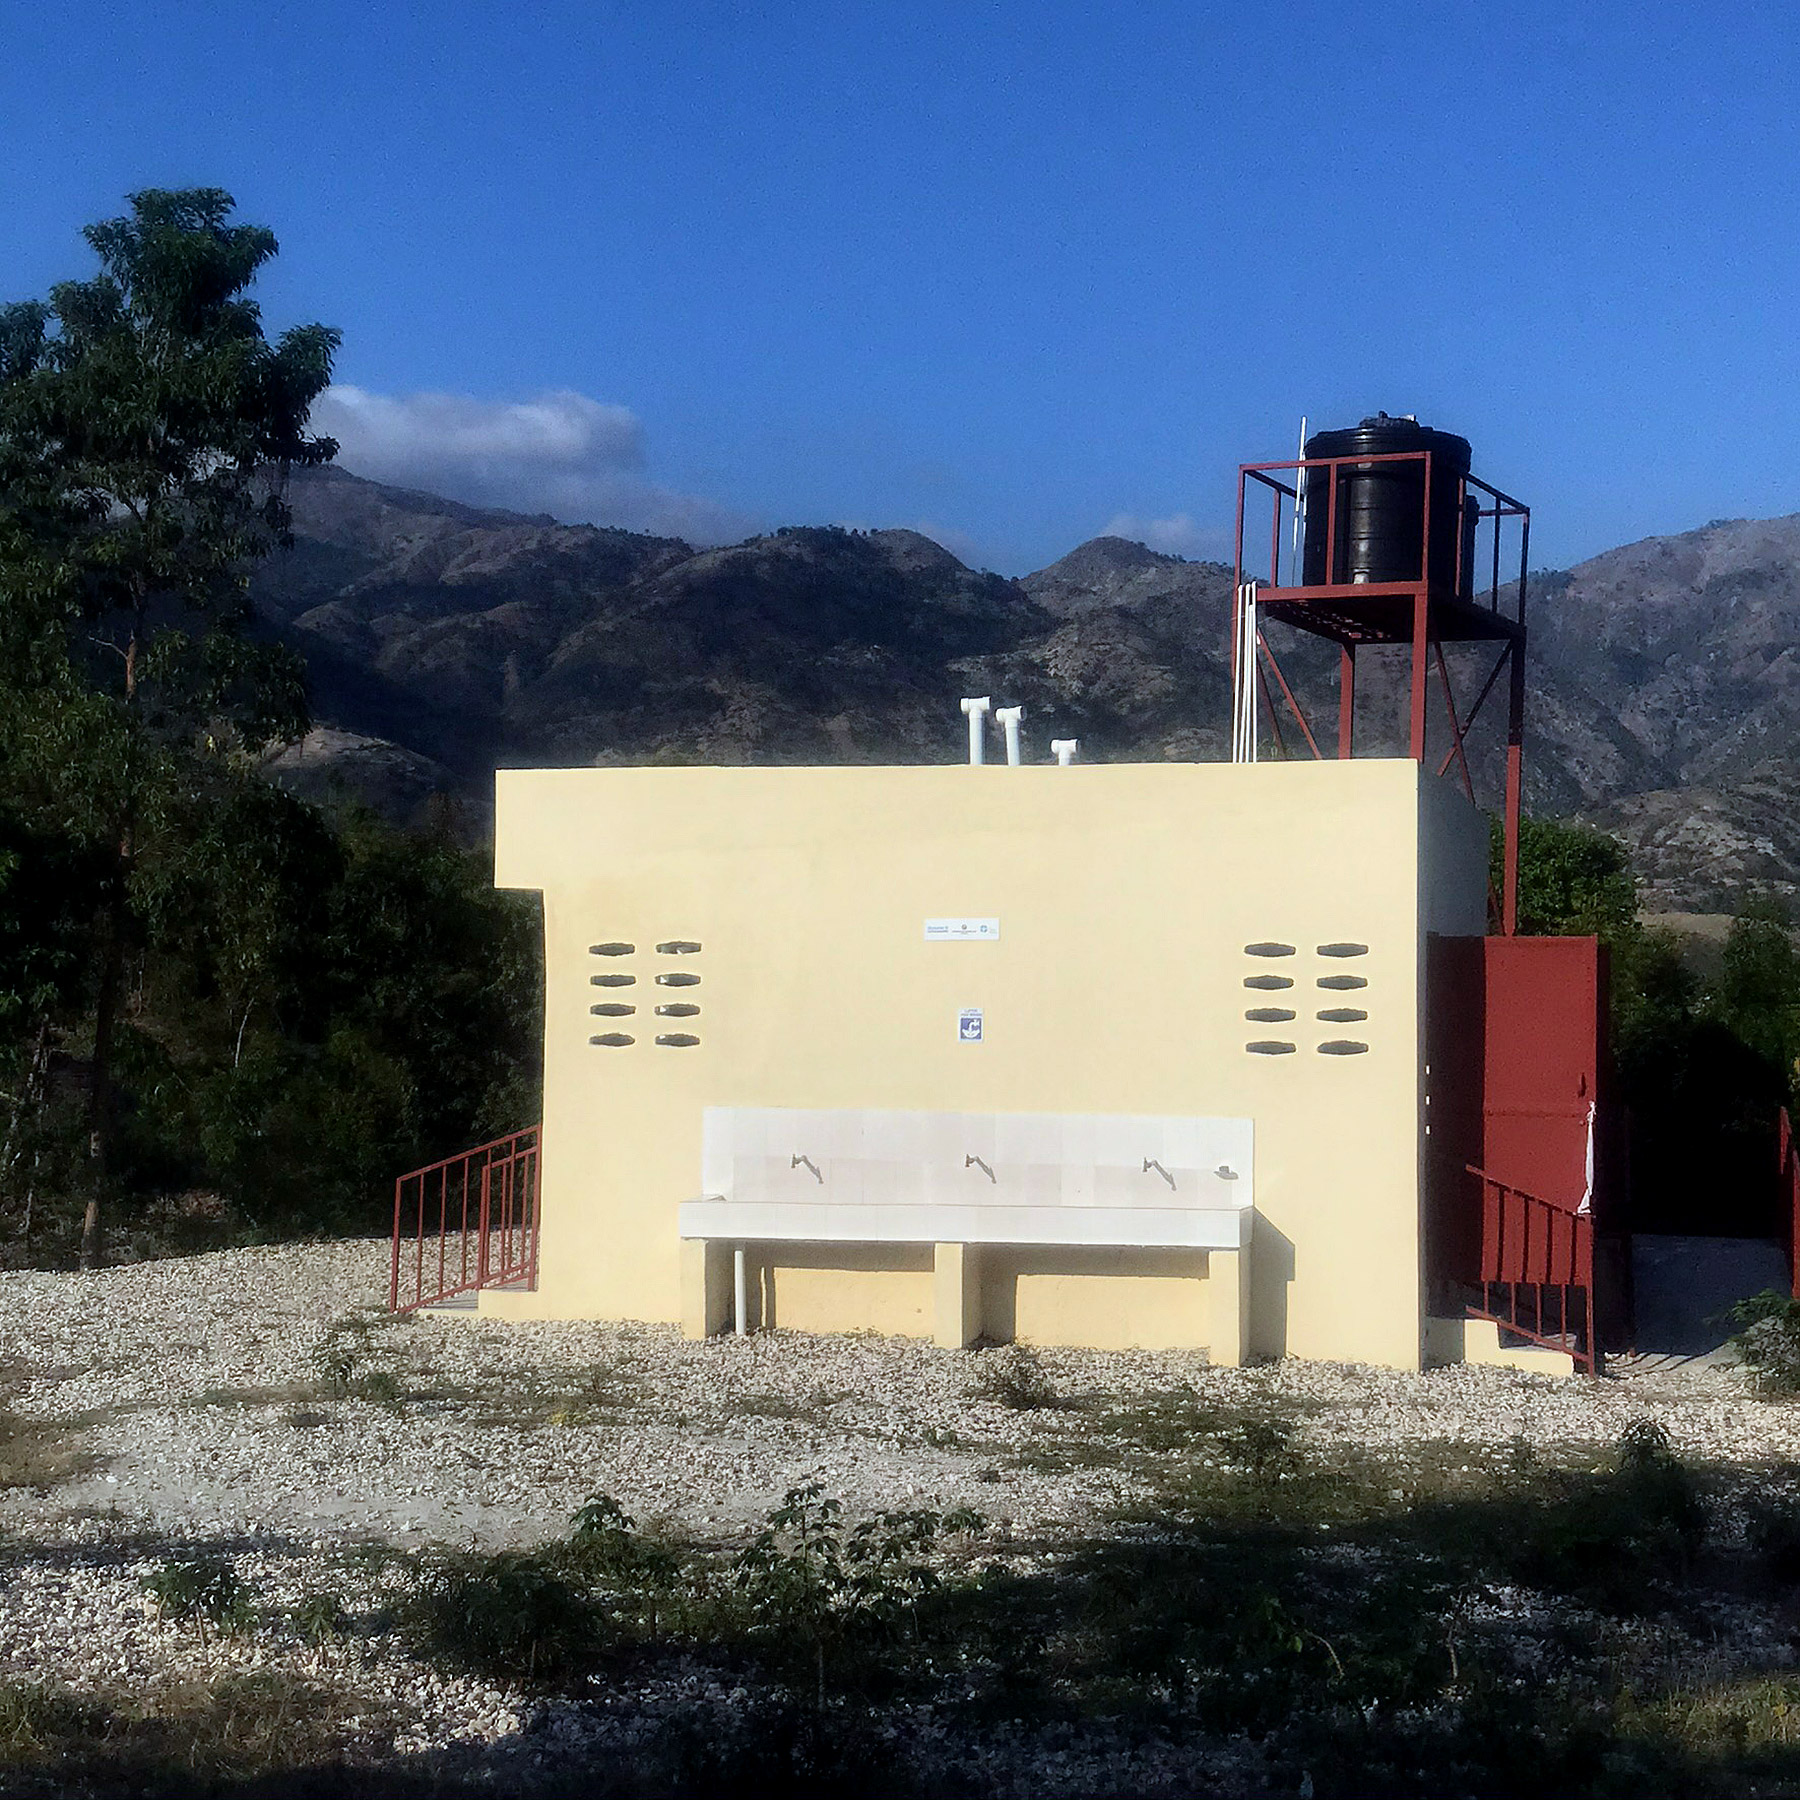 A new toilet block has been built for students at Vieux Caille school with a water tank on the roof to serve the handwashing stations